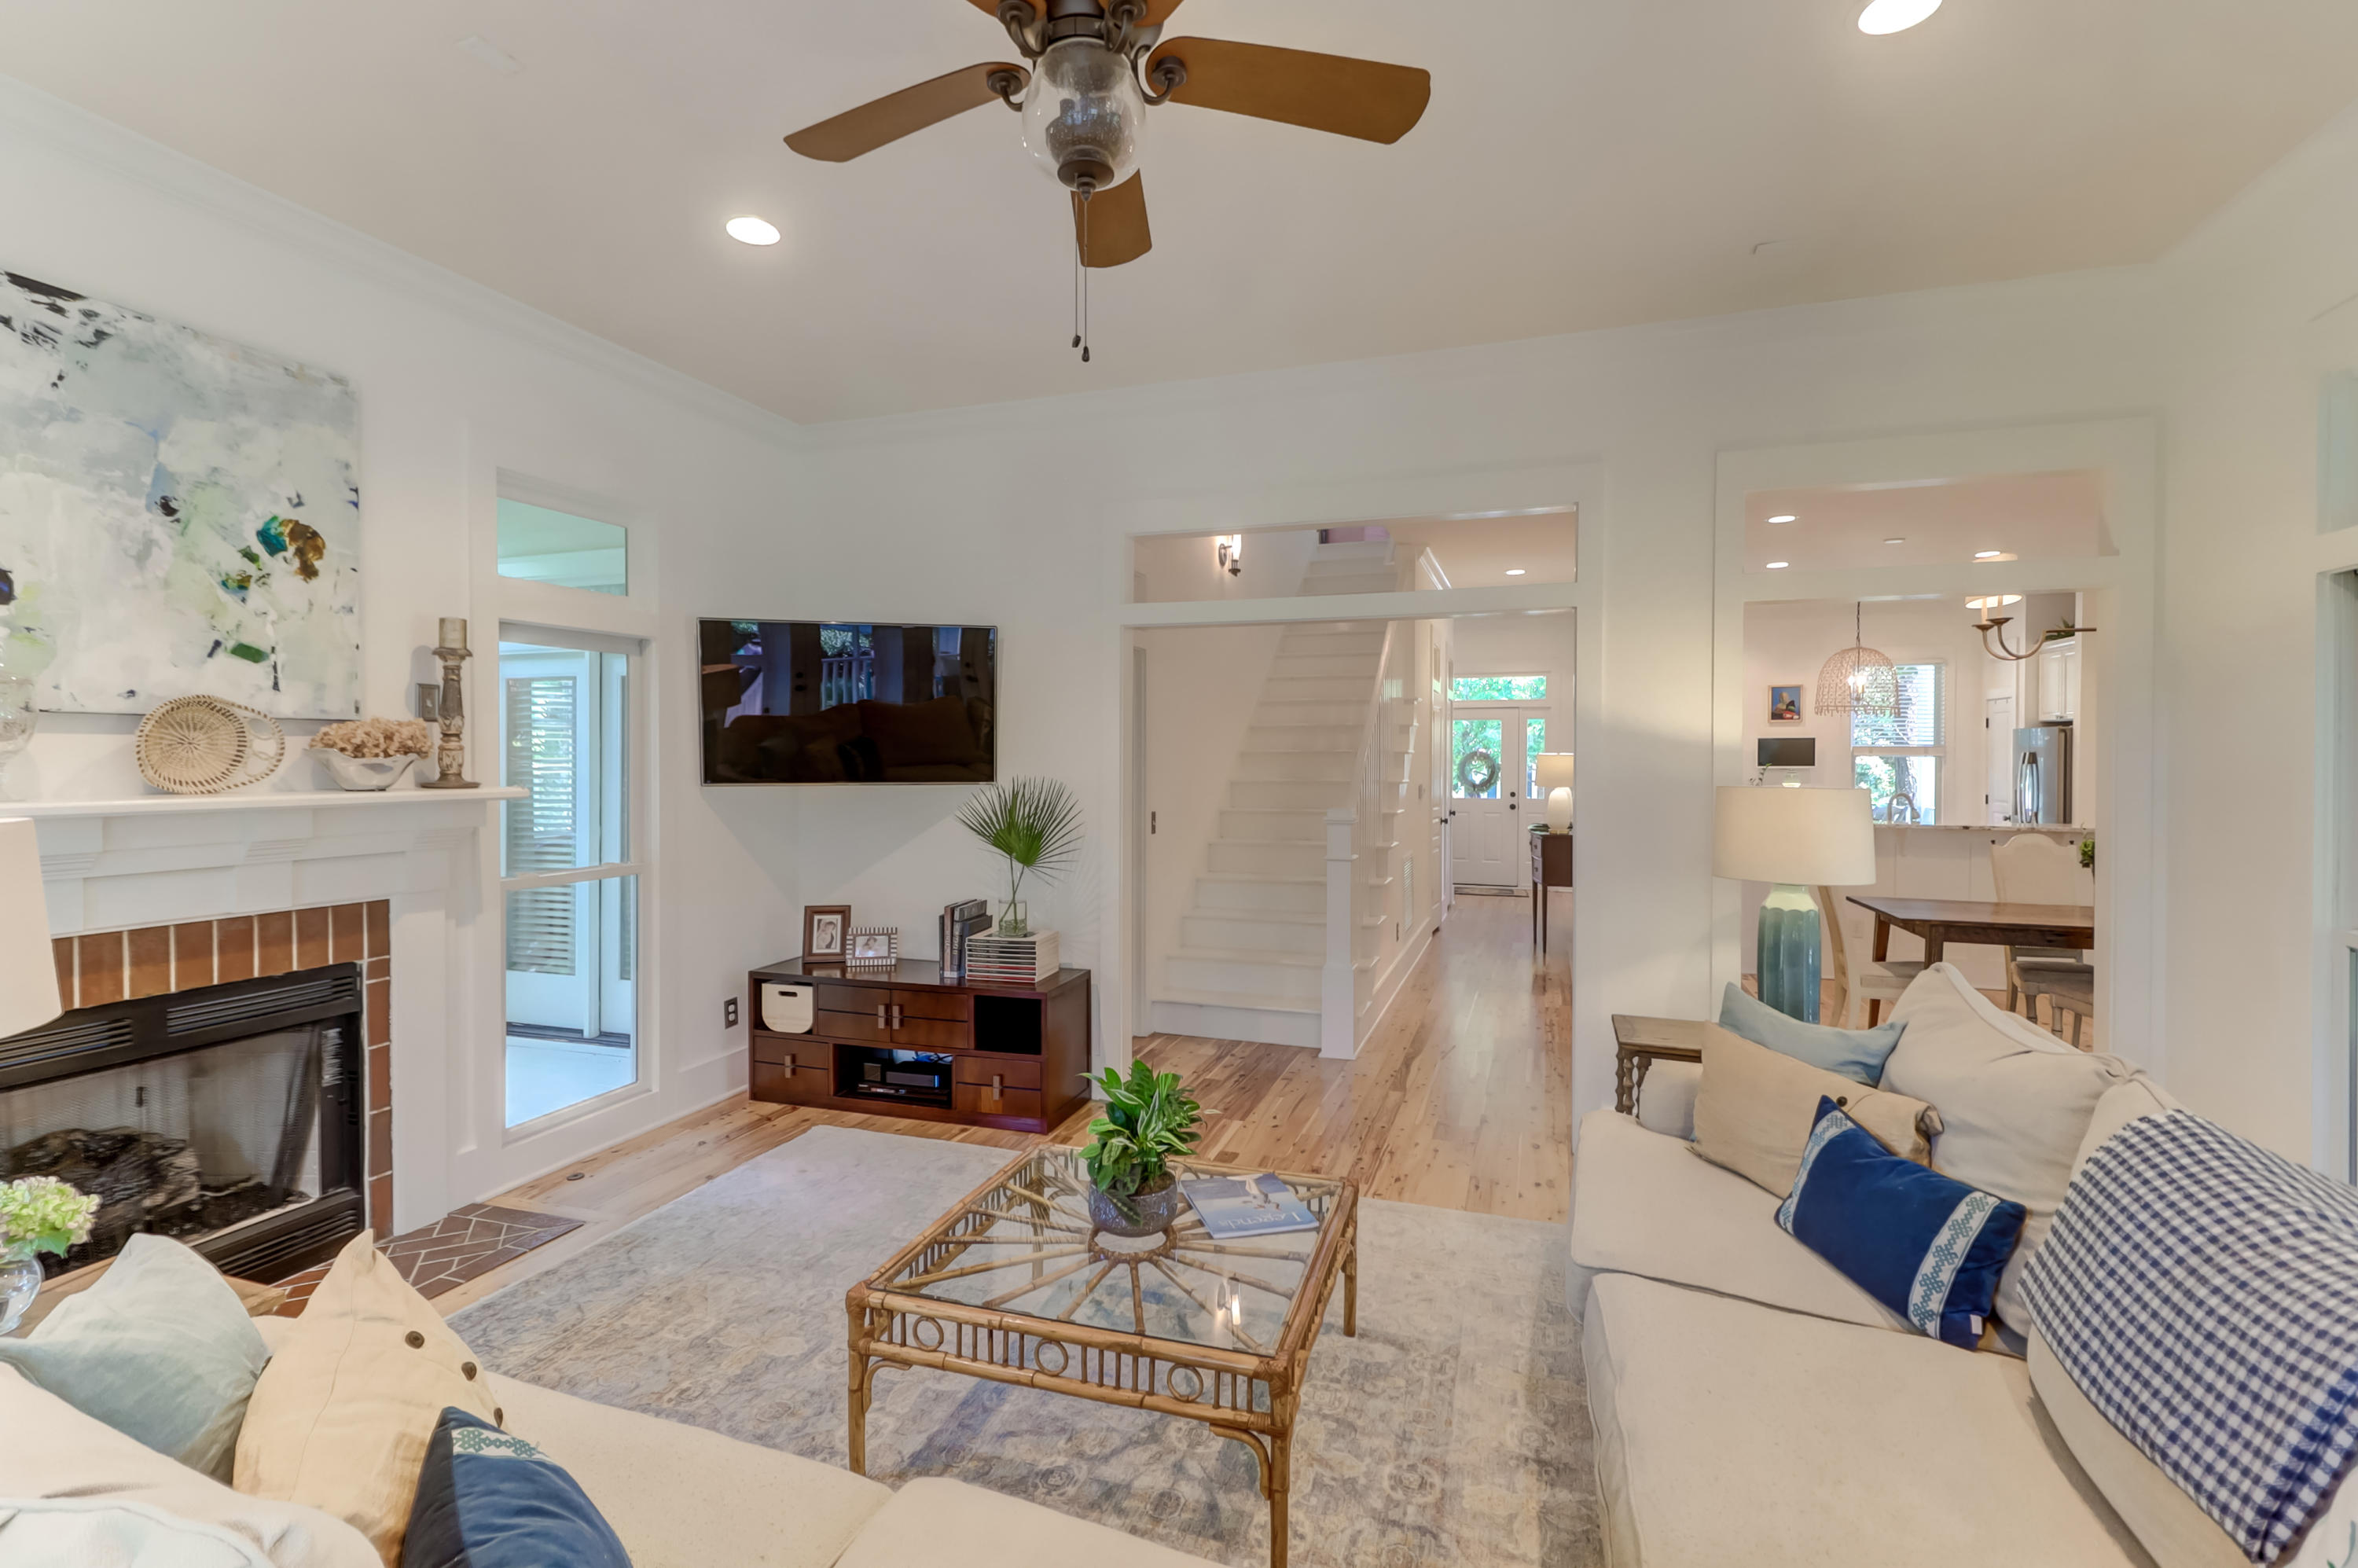 The Villages In St Johns Woods Homes For Sale - 5056 Coral Reef Dr, Johns Island, SC - 15